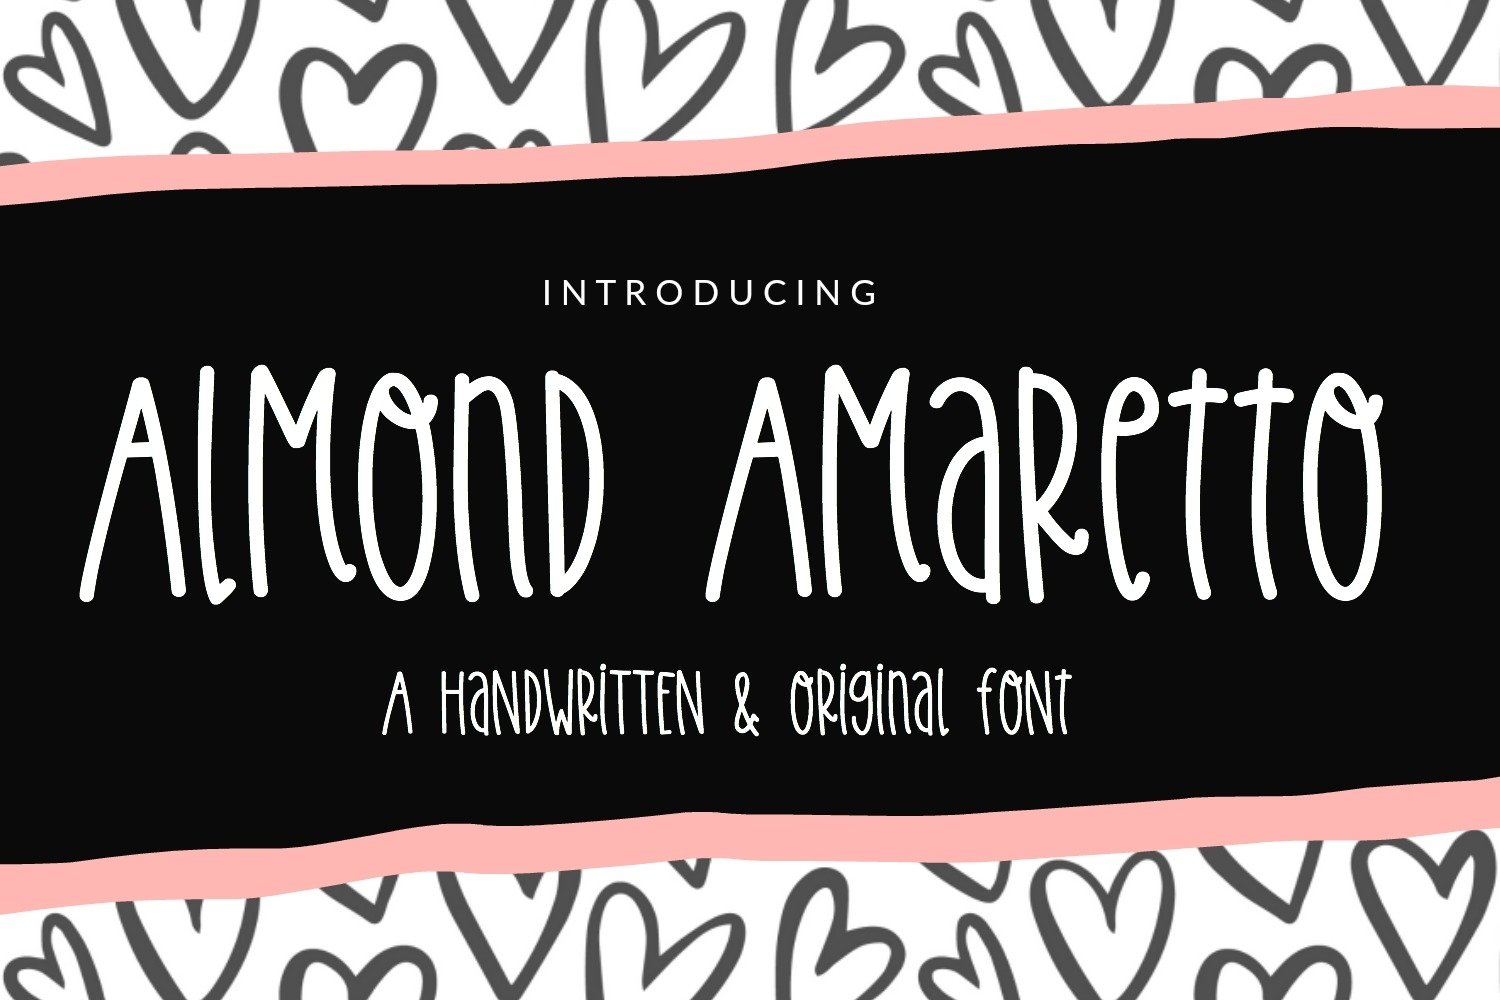 Crafter Handwritten Font Bundle- 7 Smooth Cuttable Fonts example image 12